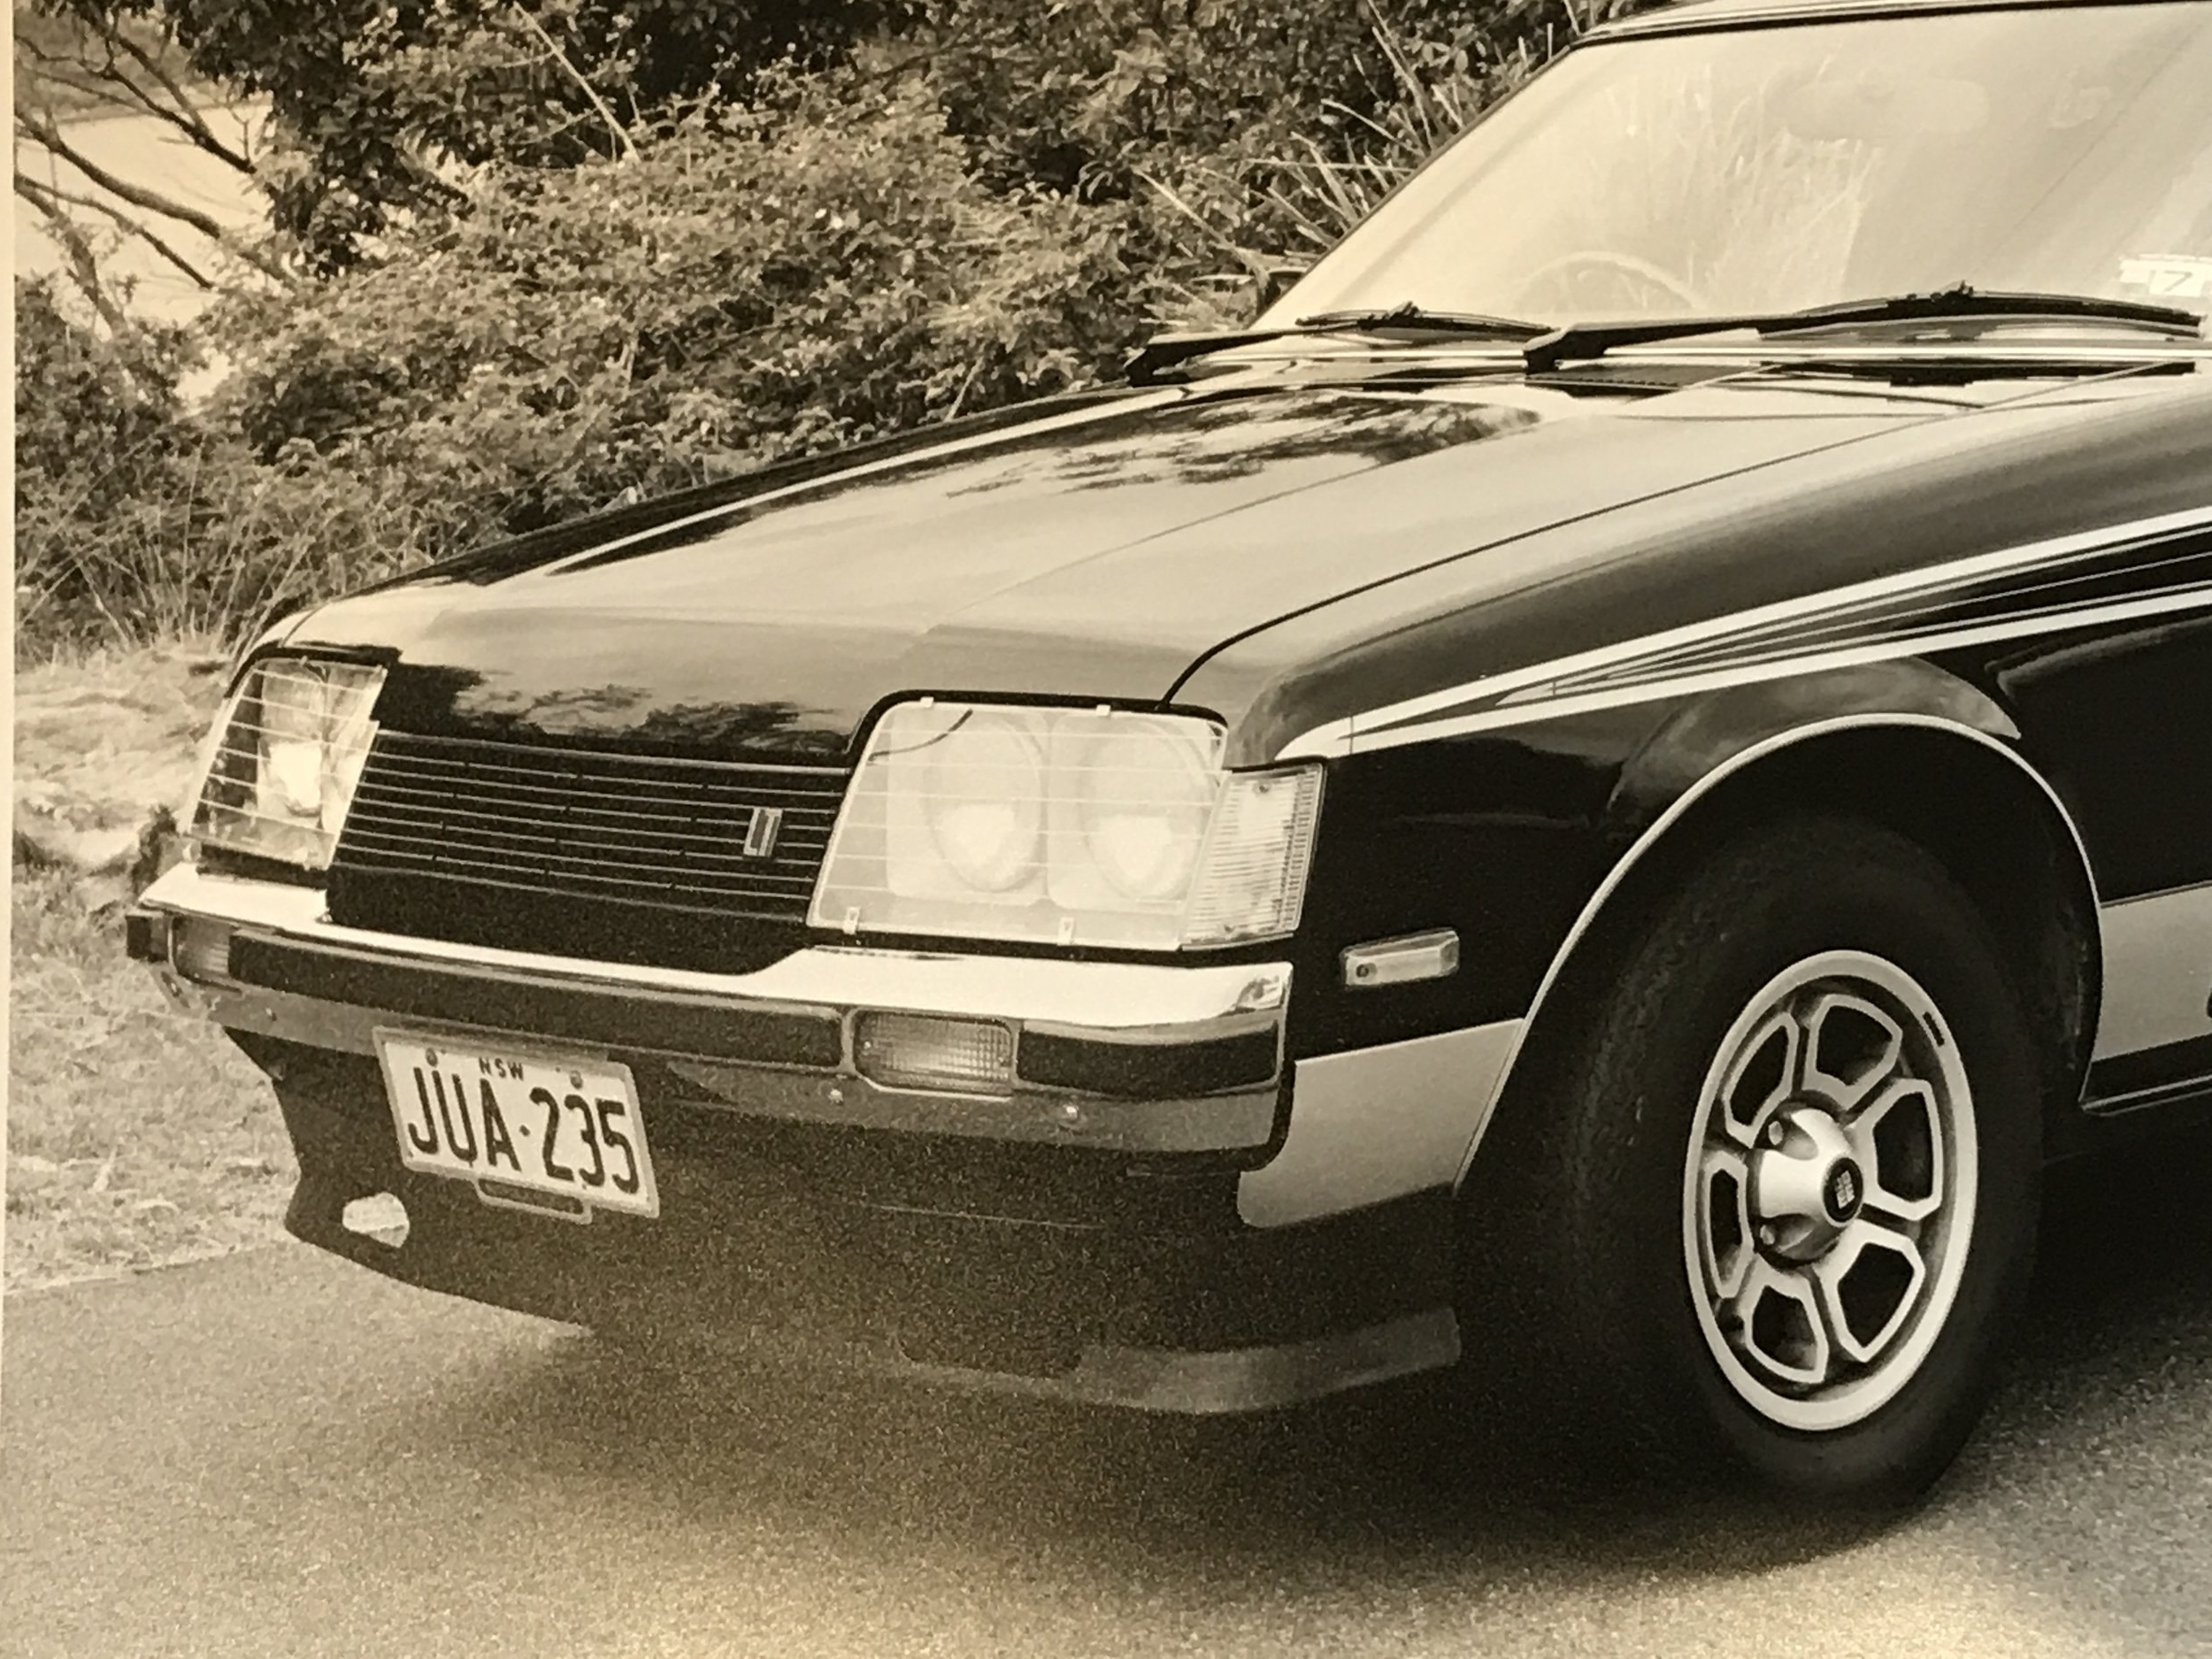 Restyled Toyota Celica 1970s-late 80s